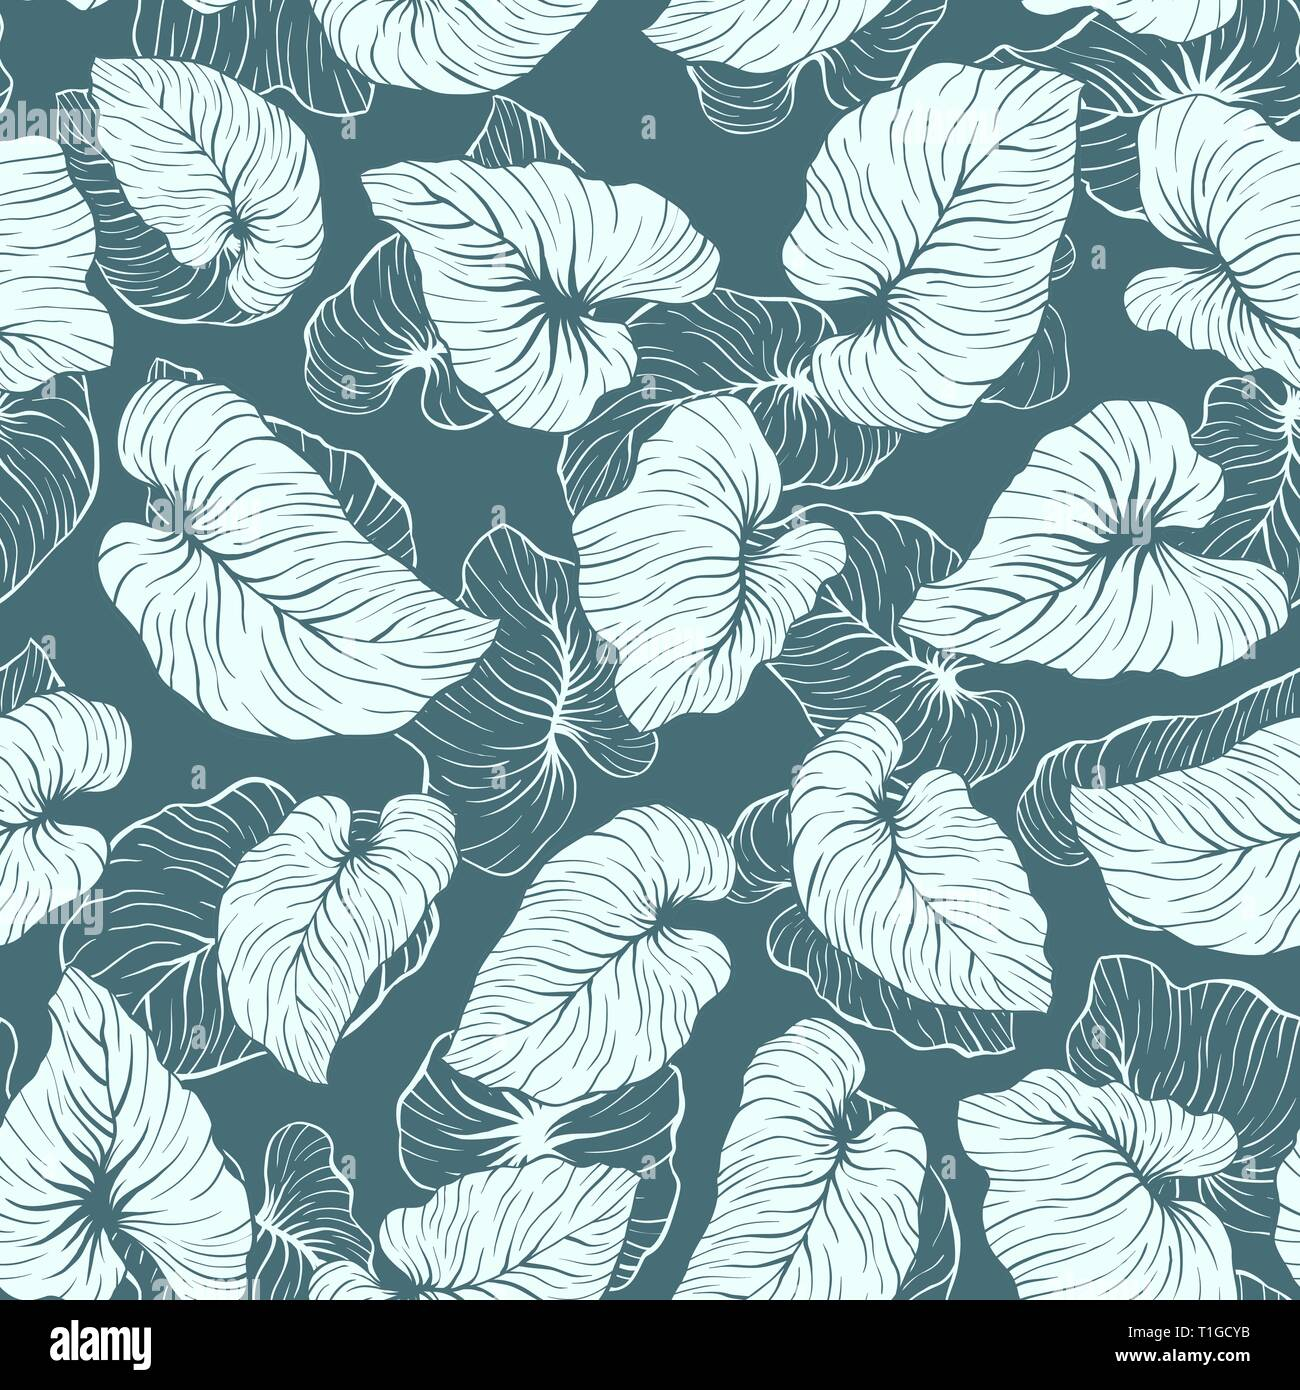 Falling Palm Leaves Repeat Seamless Vector Pattern - Stock Vector